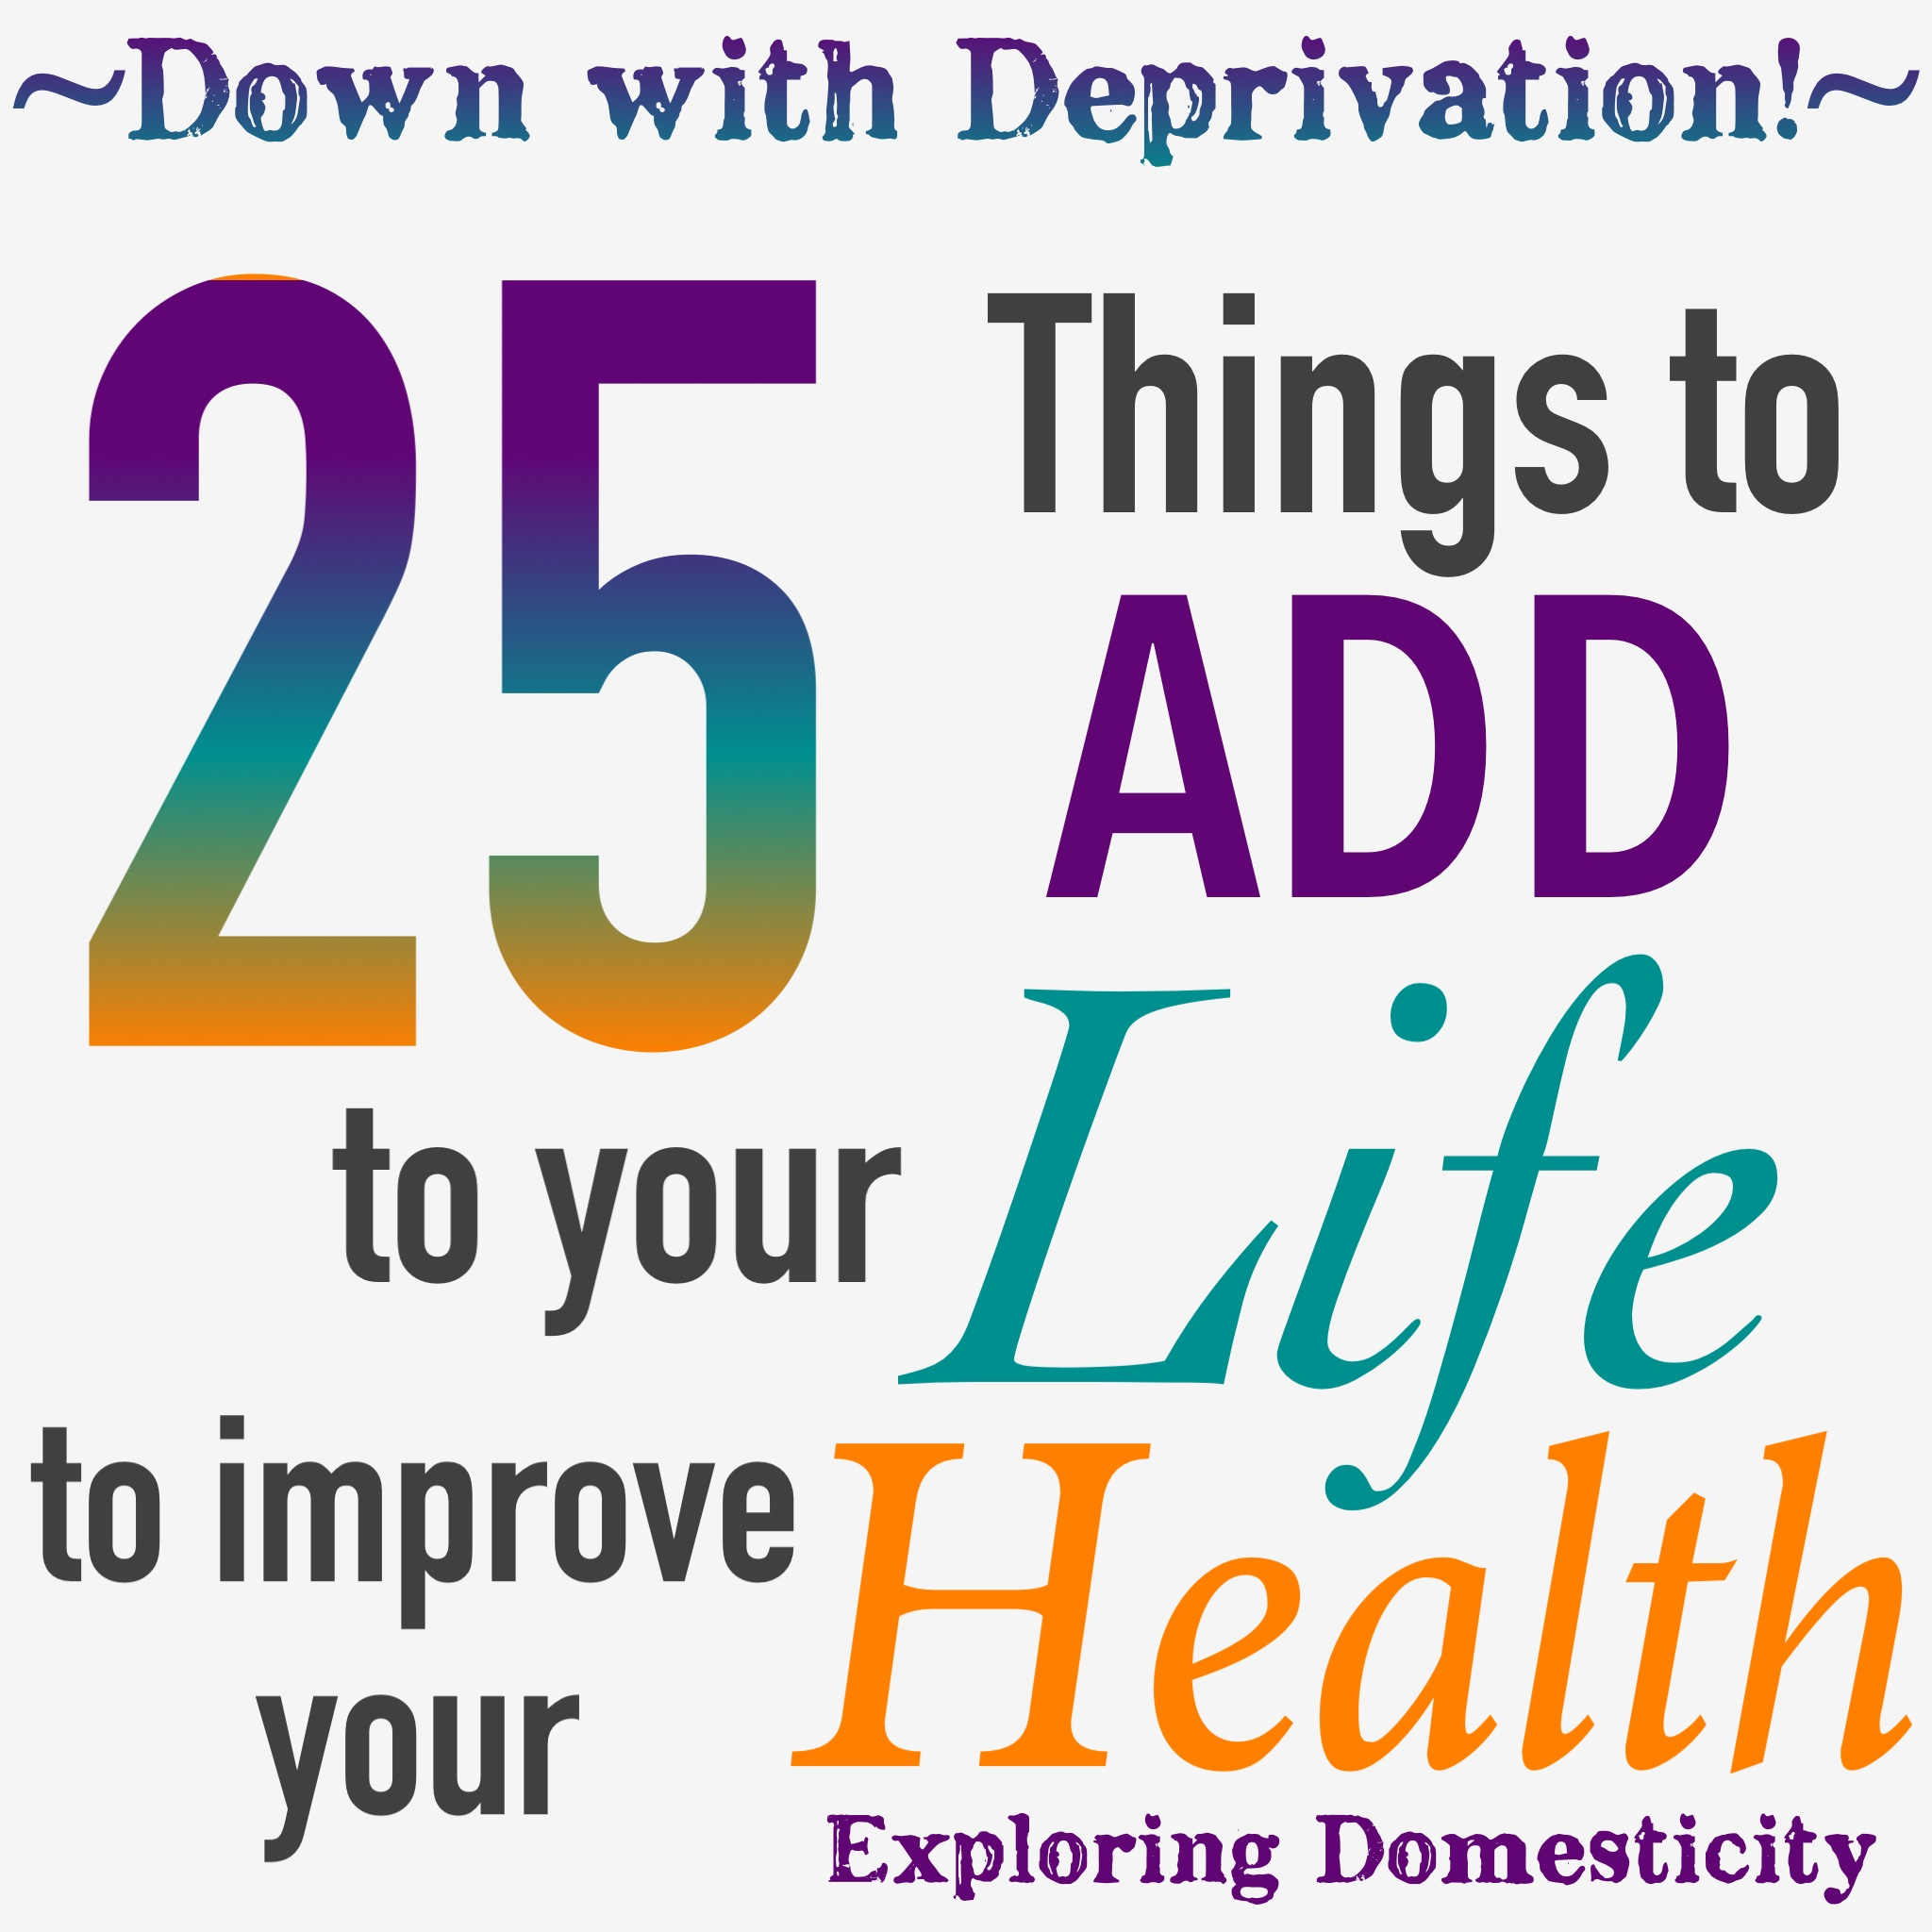 Down with deprivation! 25 things to ADD to your life to improve your health